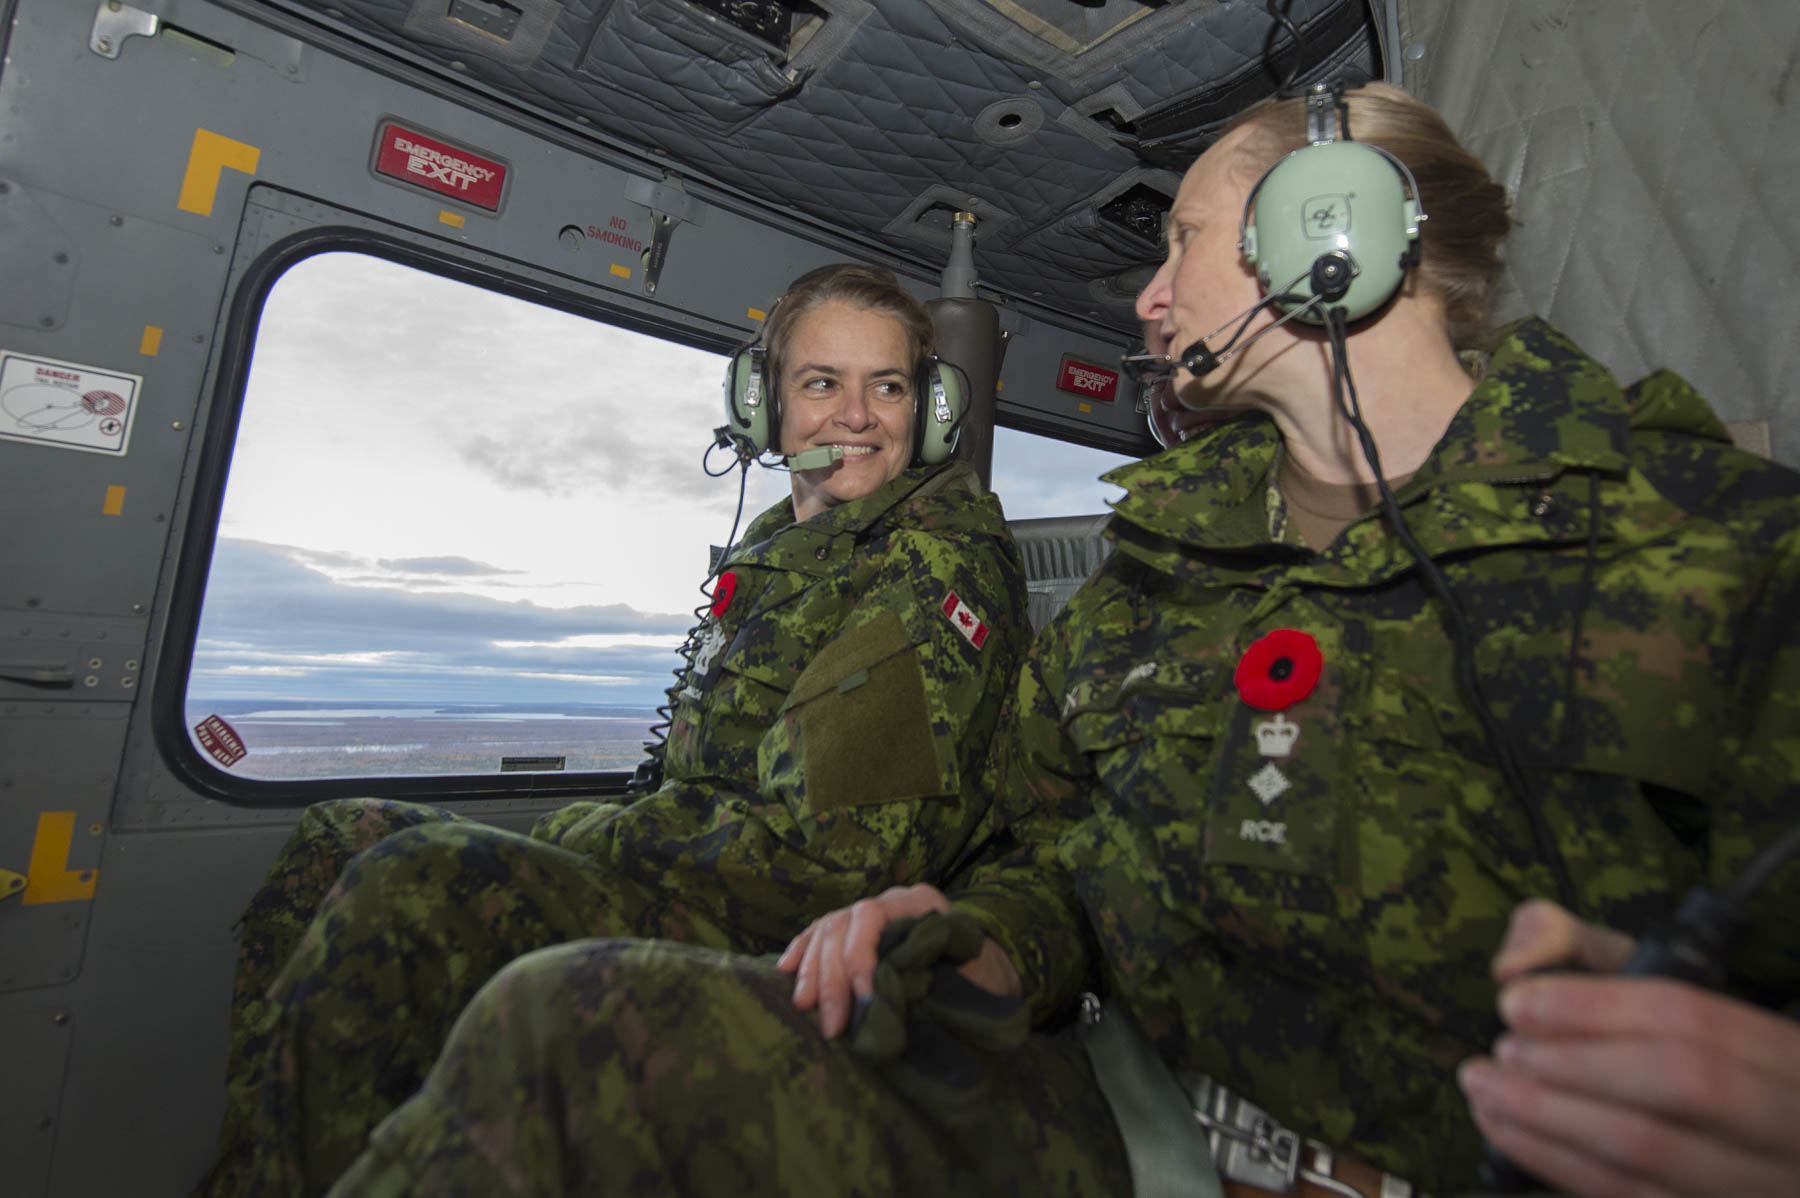 Her Excellency flew over the base in a helicopter.